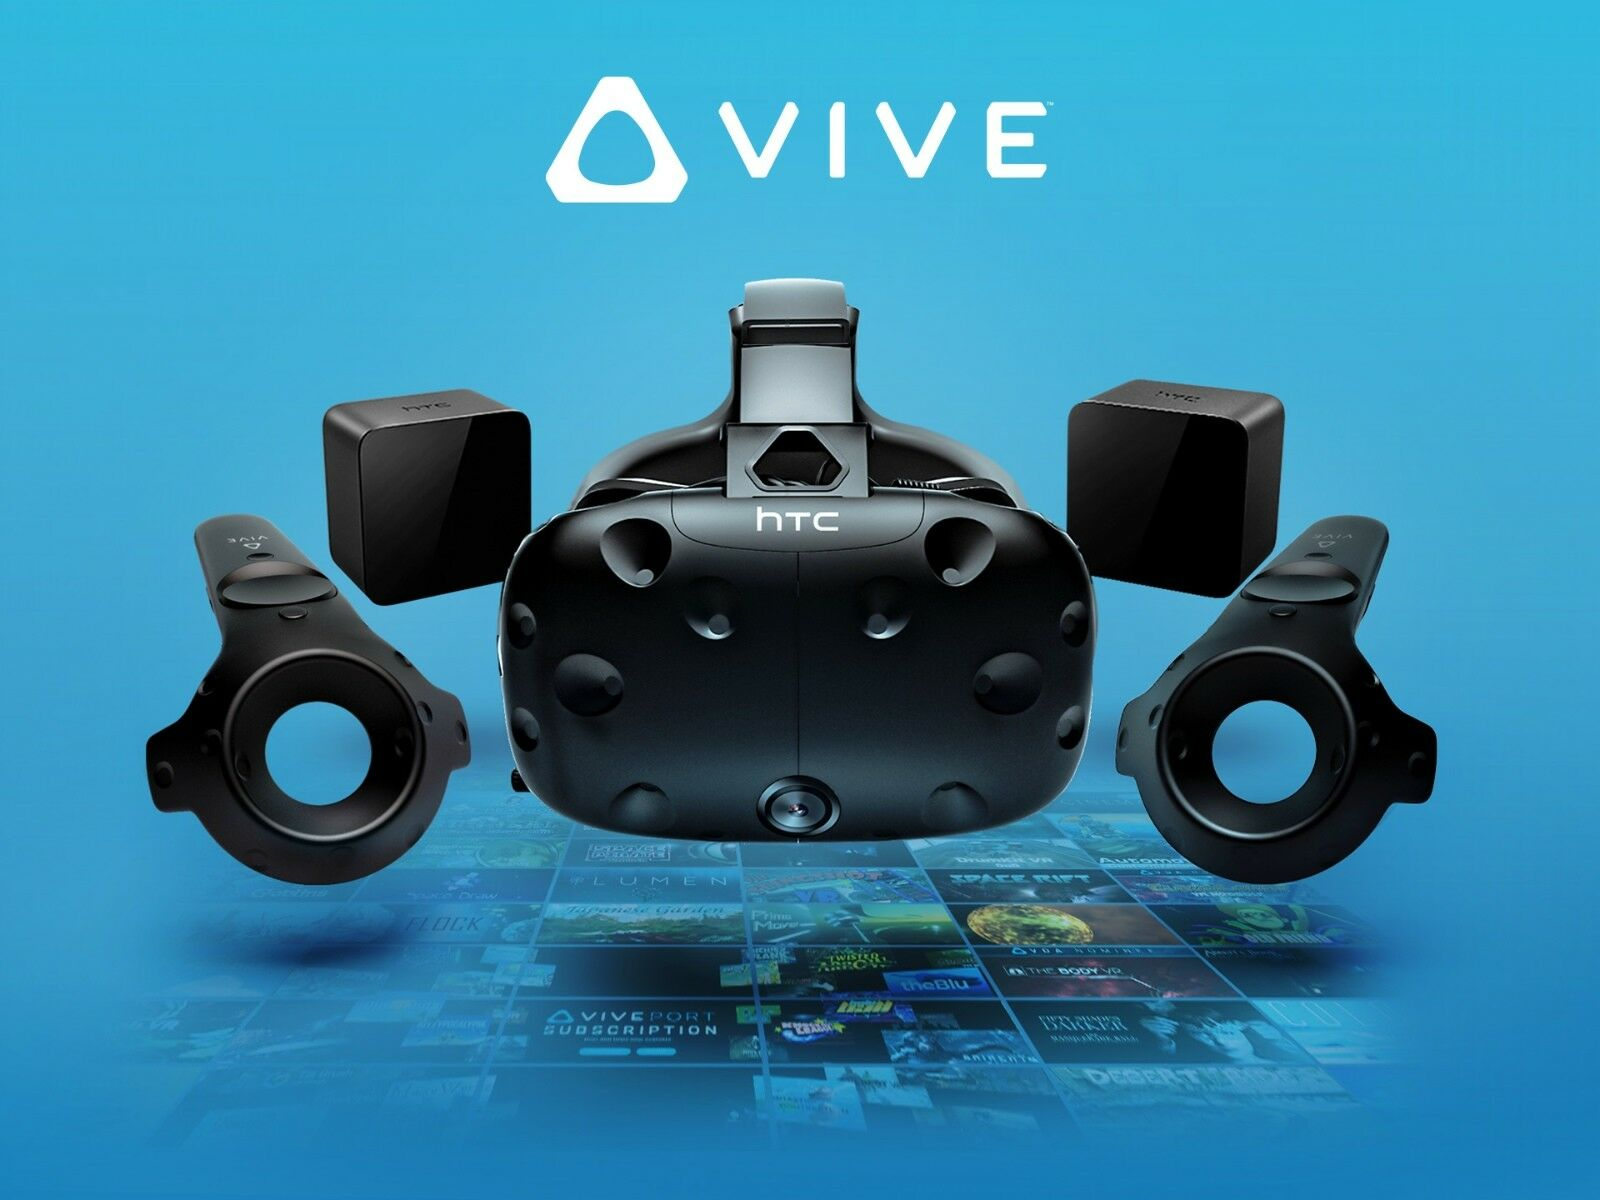 *BRAND NEW* HTC Vive VR Virtual Reality Headset Consumer Version Retail CV1